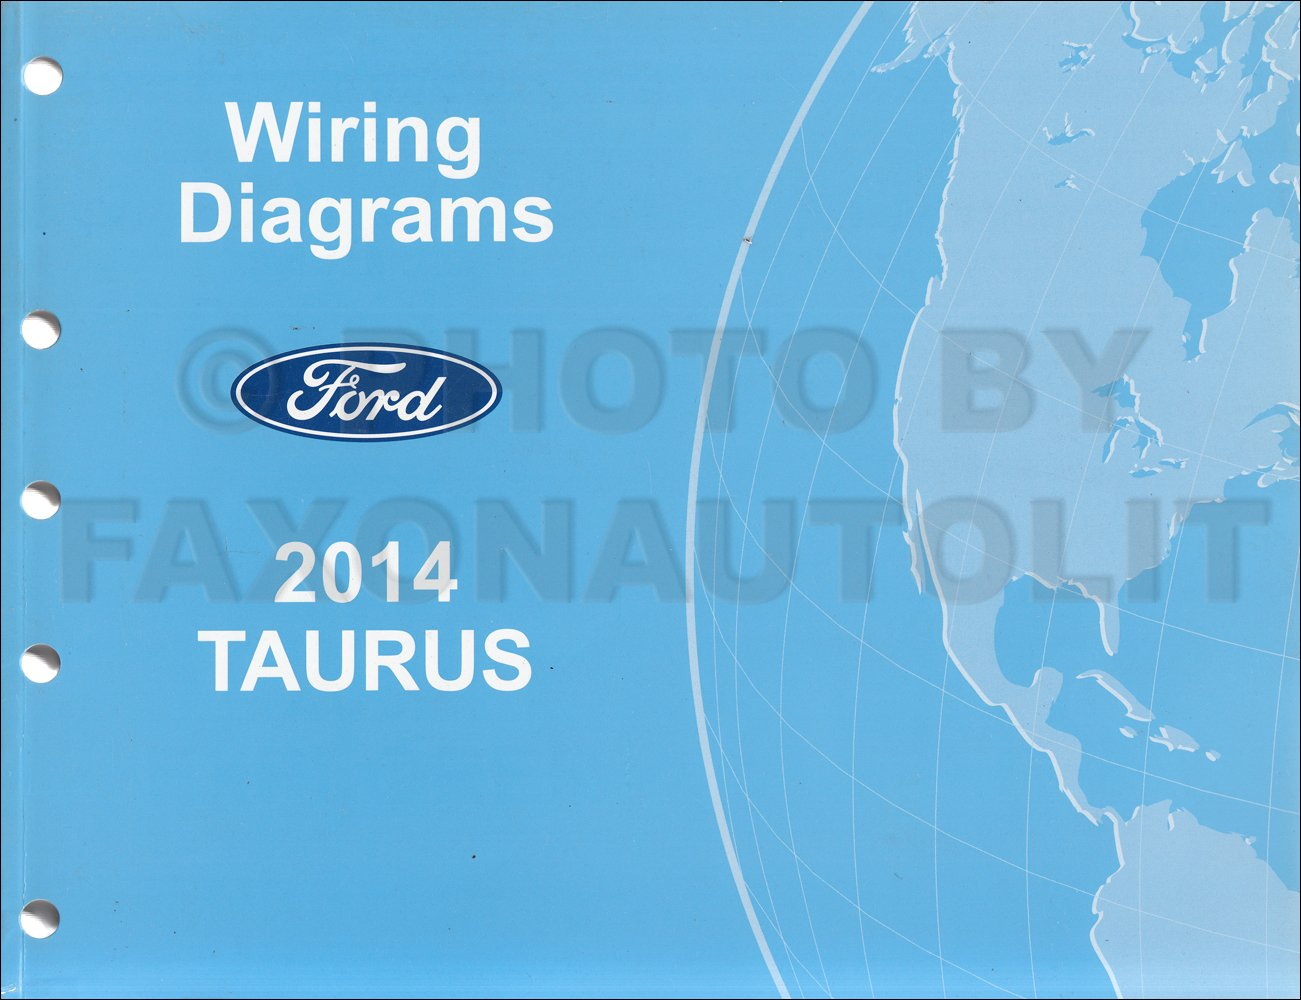 2014 ford taurus wiring diagram manual original ford amazon com books 1996 Ford Taurus Wiring Diagram